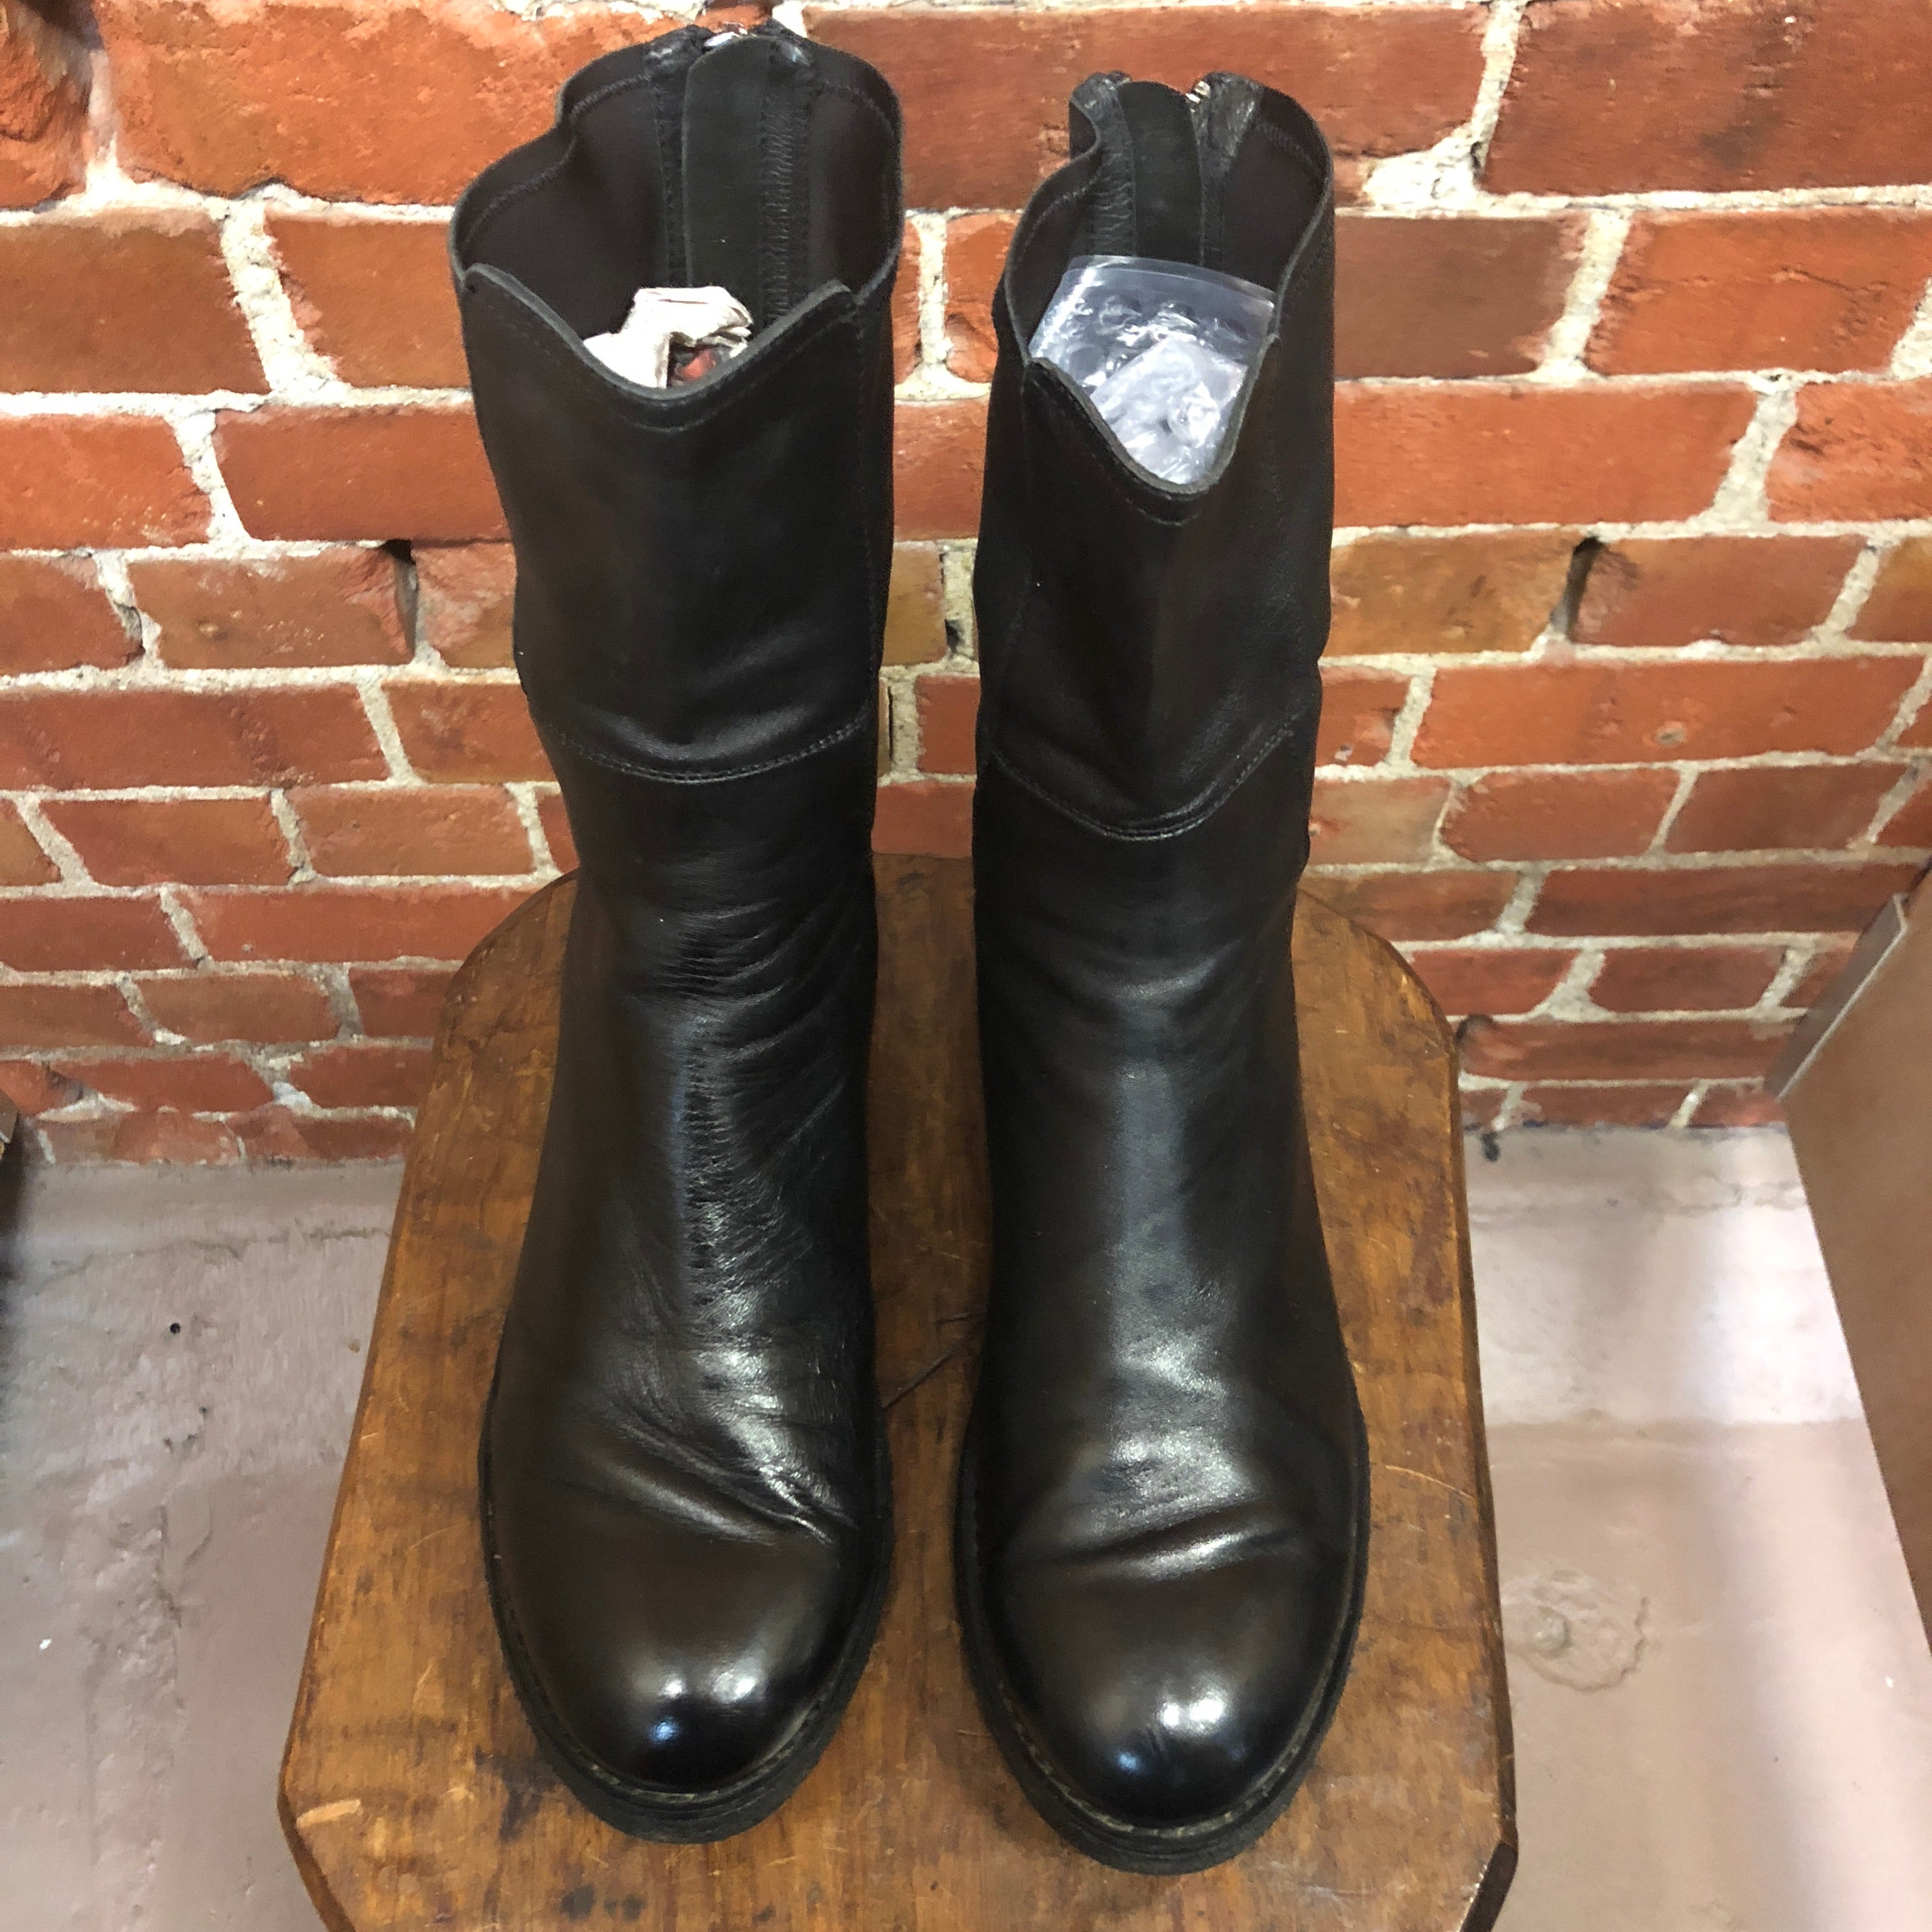 SLIENT J NZ made leather boots